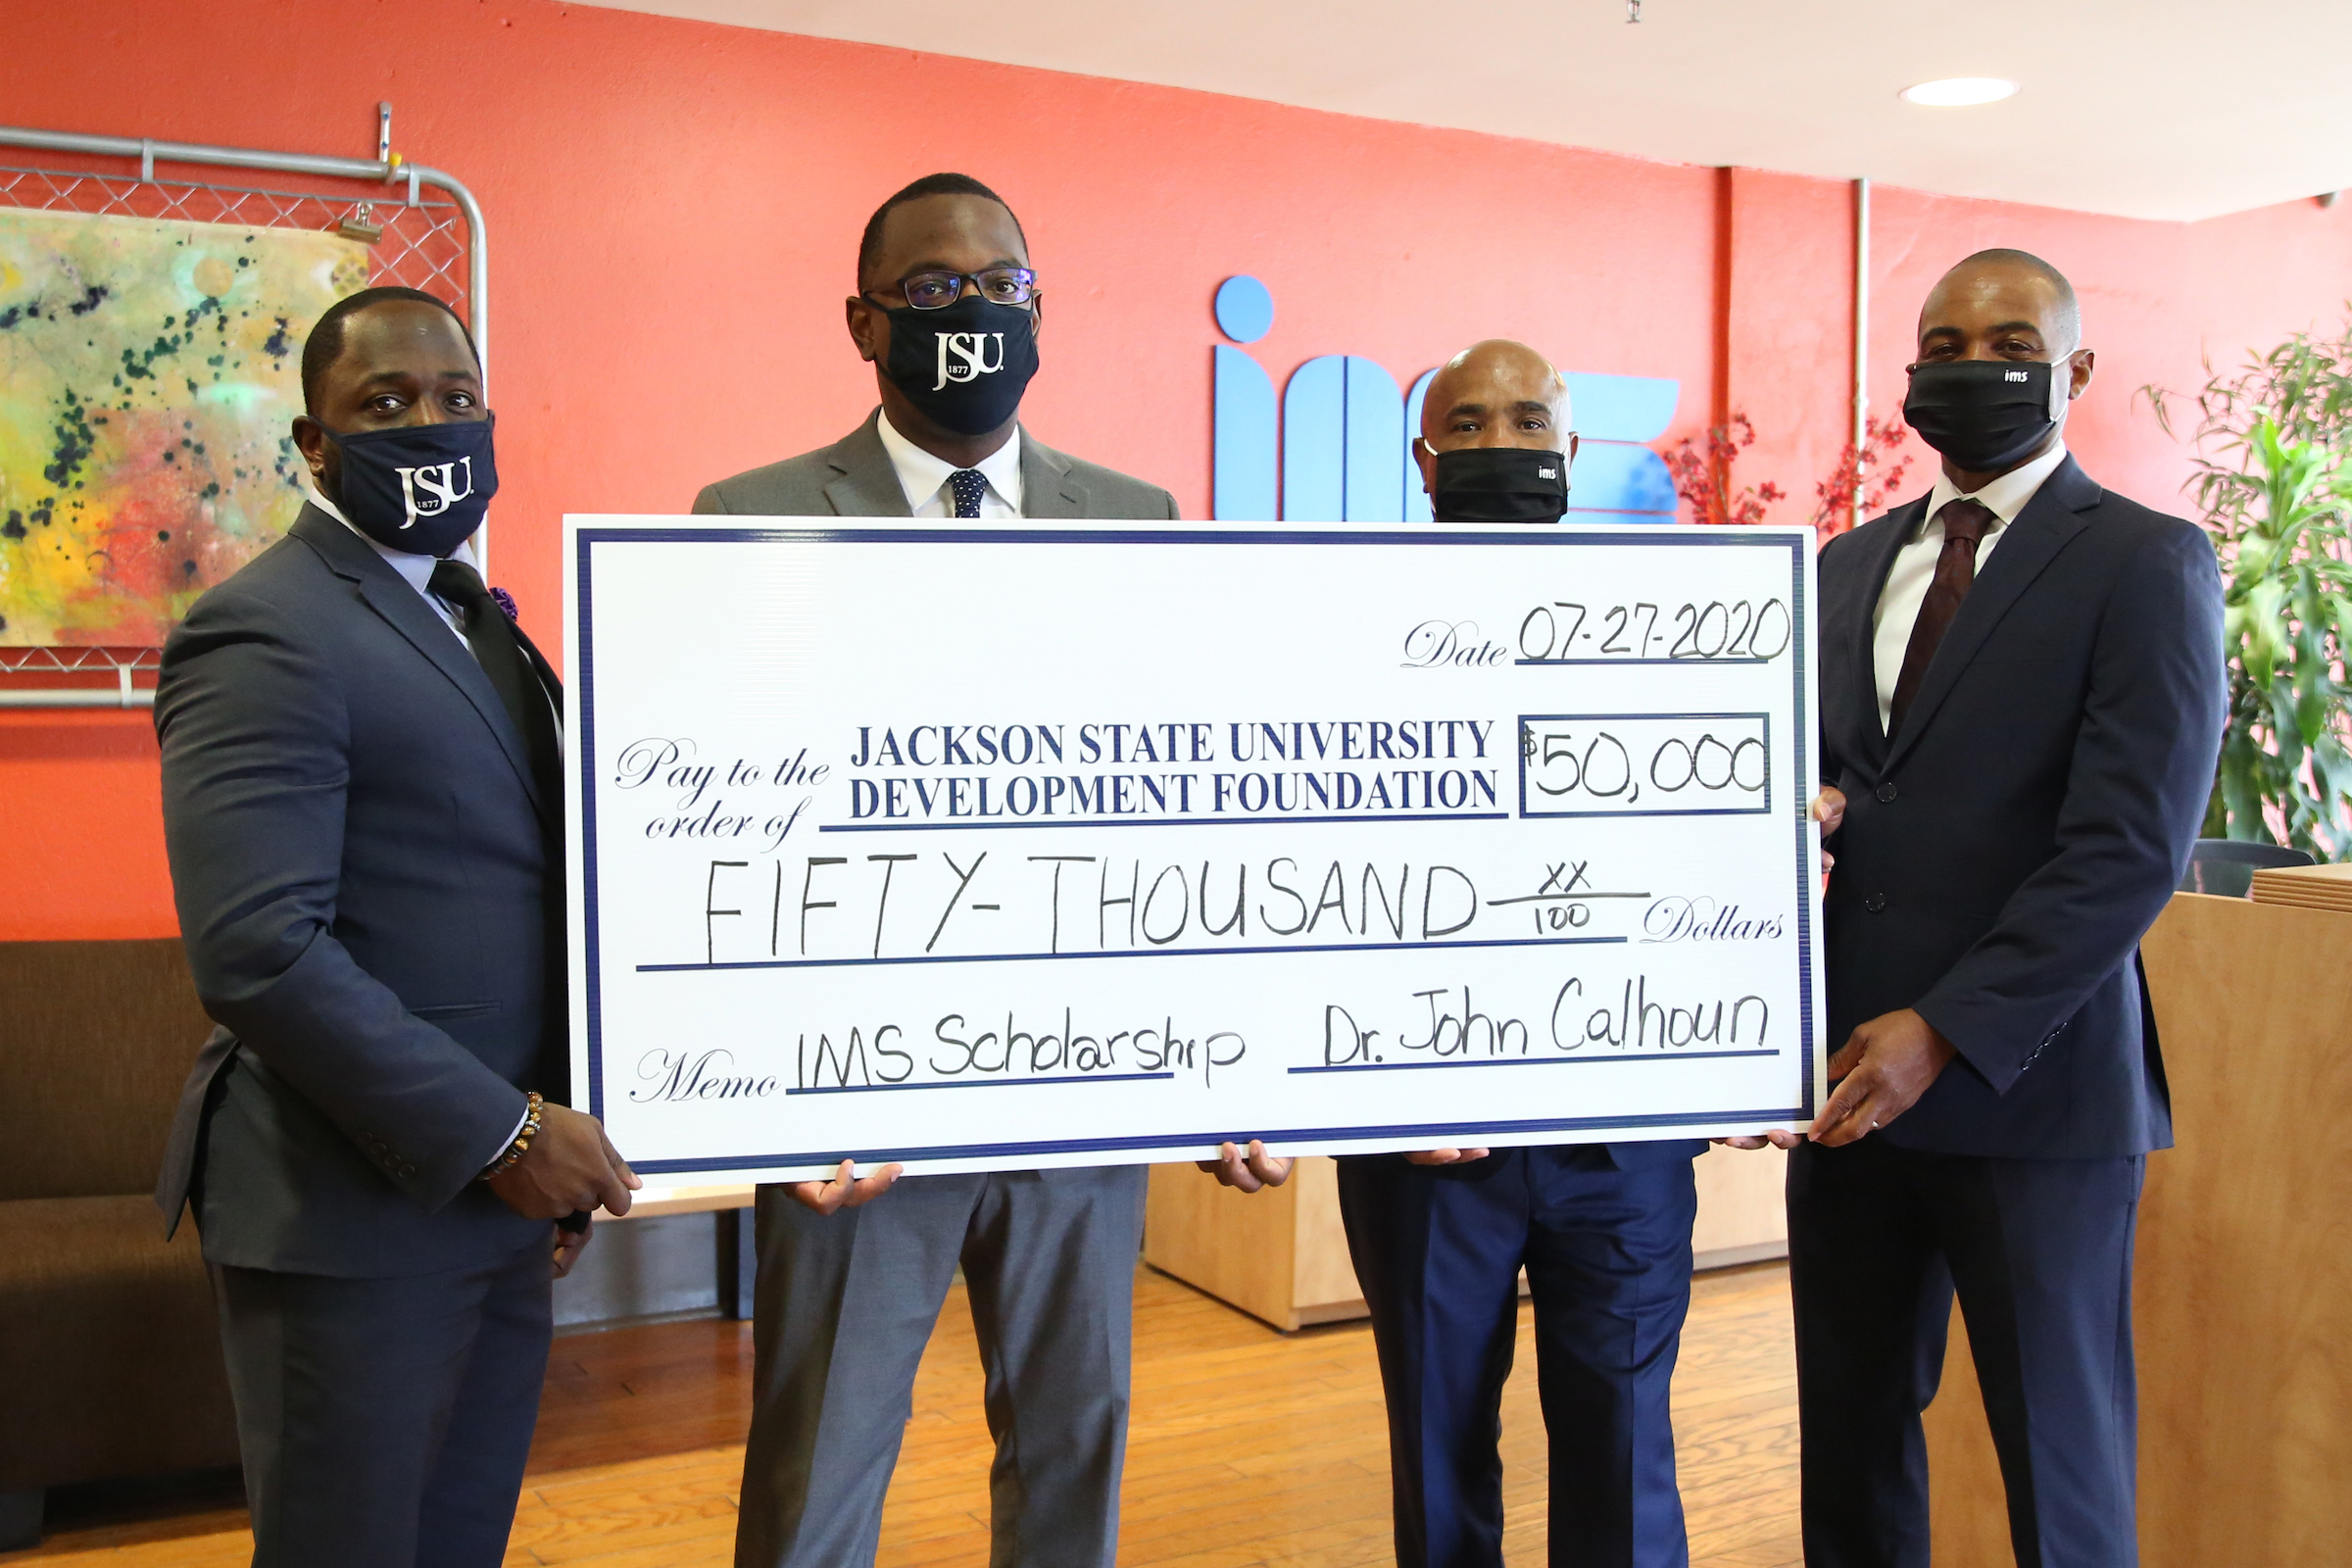 (Pictured from left to right)David Howard, research/program analyst for Division of Institutional Advancement, Thomas Hudson, Esquire, Acting President of JSU, Dr. John D. Calhoun, CEO of IMS Engineers and Rod L. Hill, COO and President of IMS Engineers.